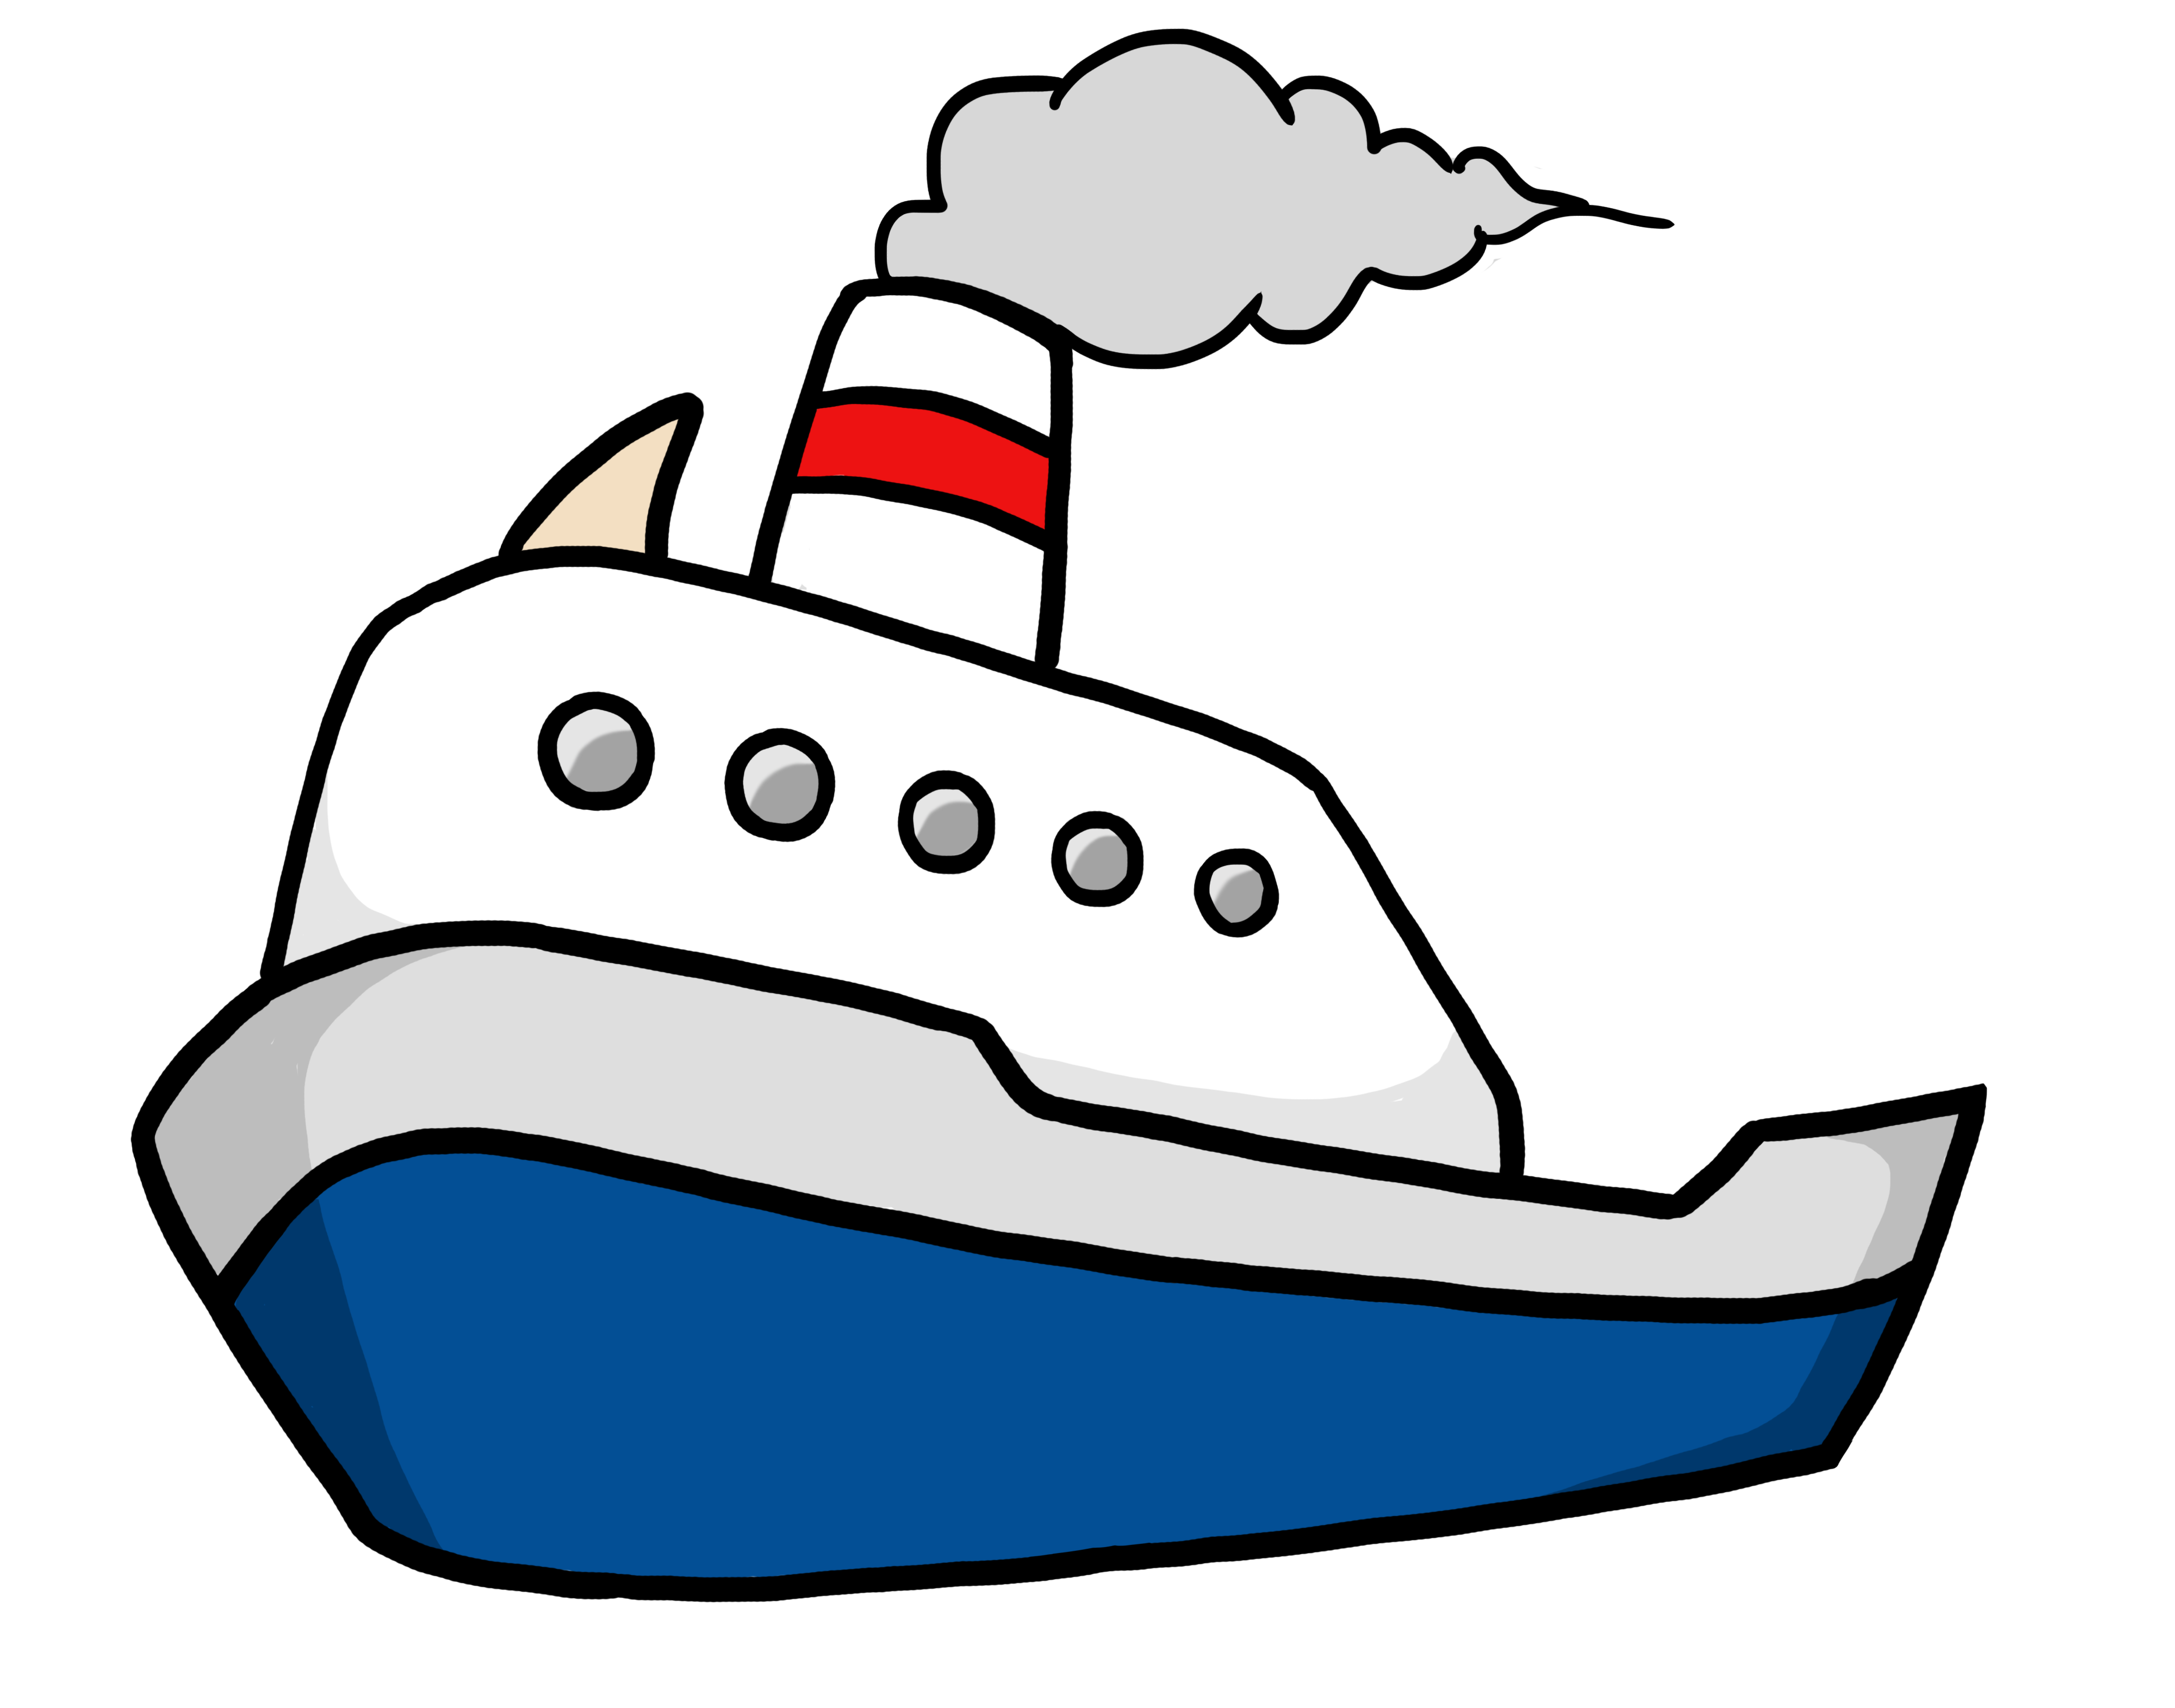 Leaf clipart boat. Row clip art morze